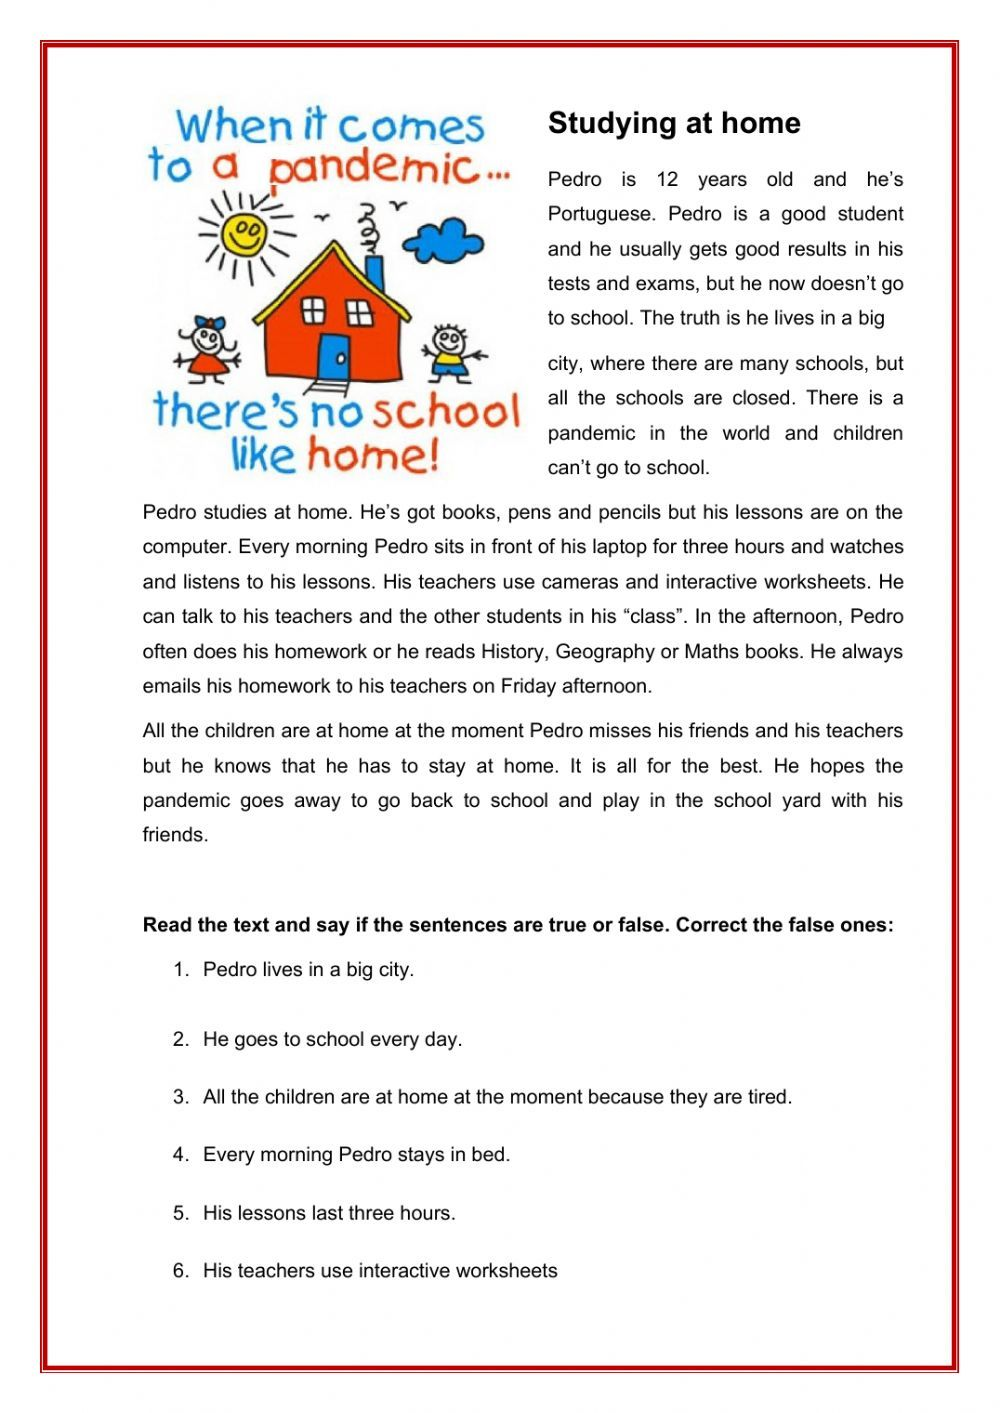 Studying at home - Interactive worksheet in 2020 | Reading ...